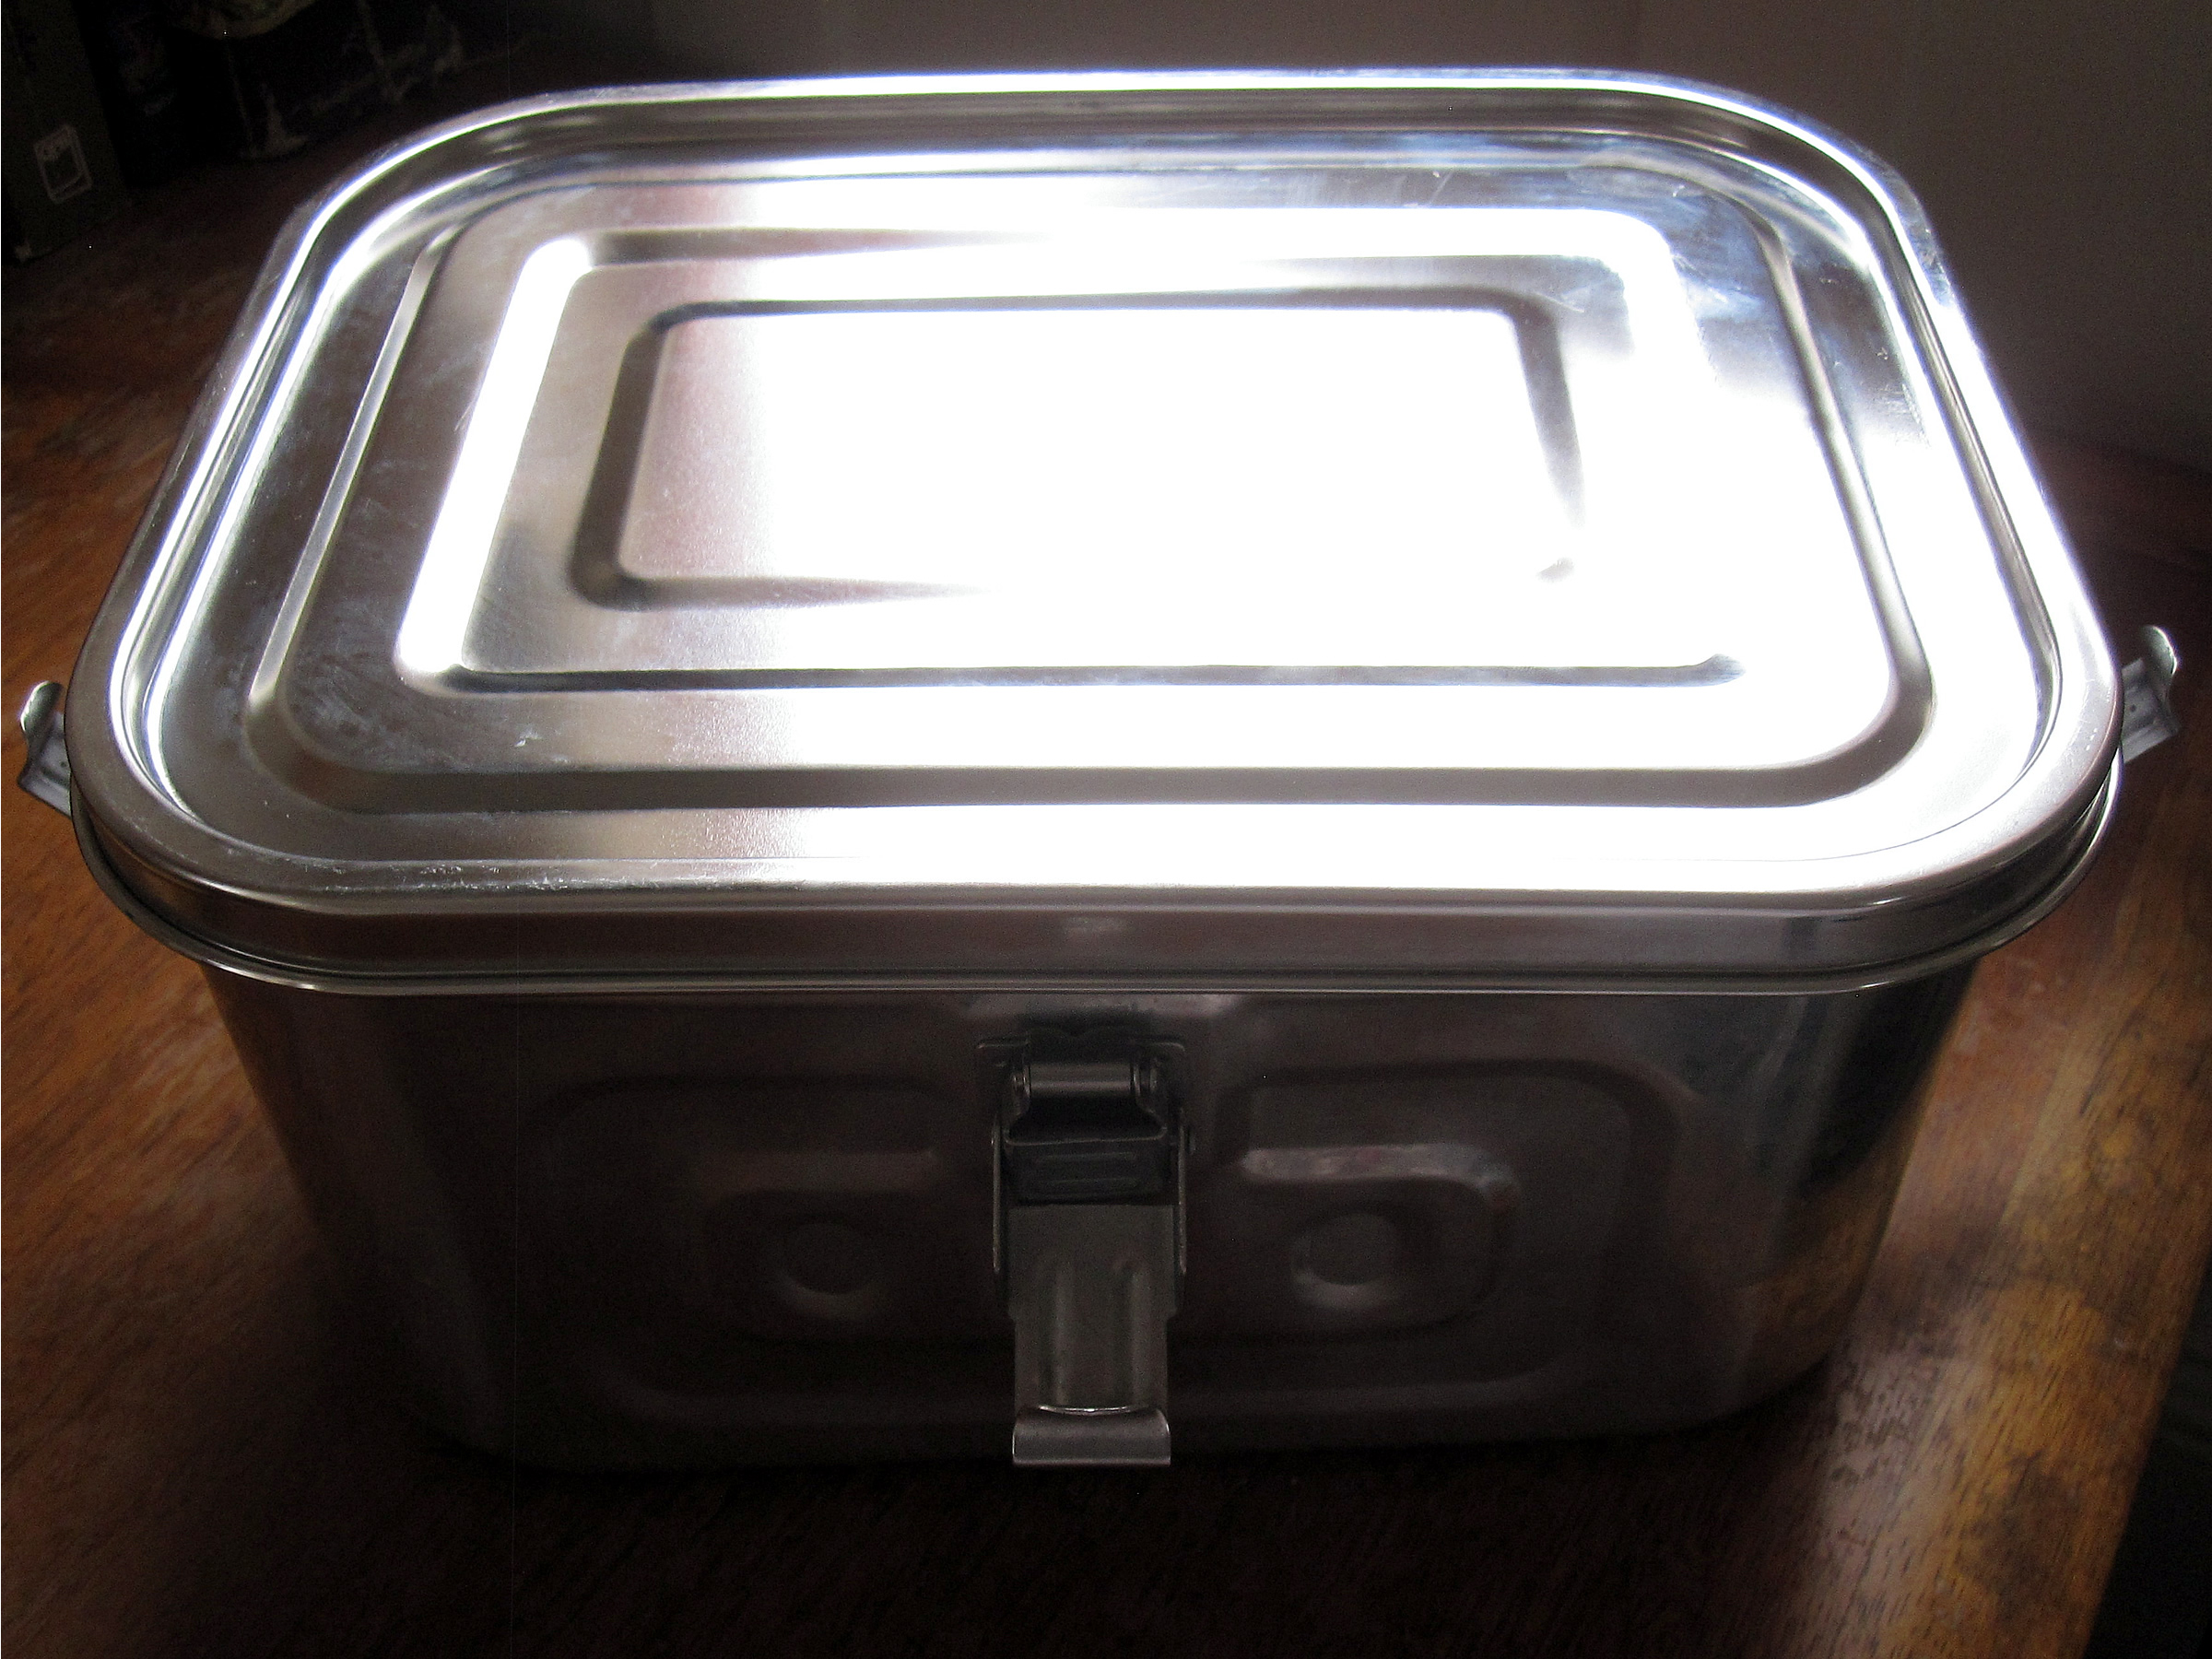 My Favorite Airtight Stainless Steel Kitchen Container